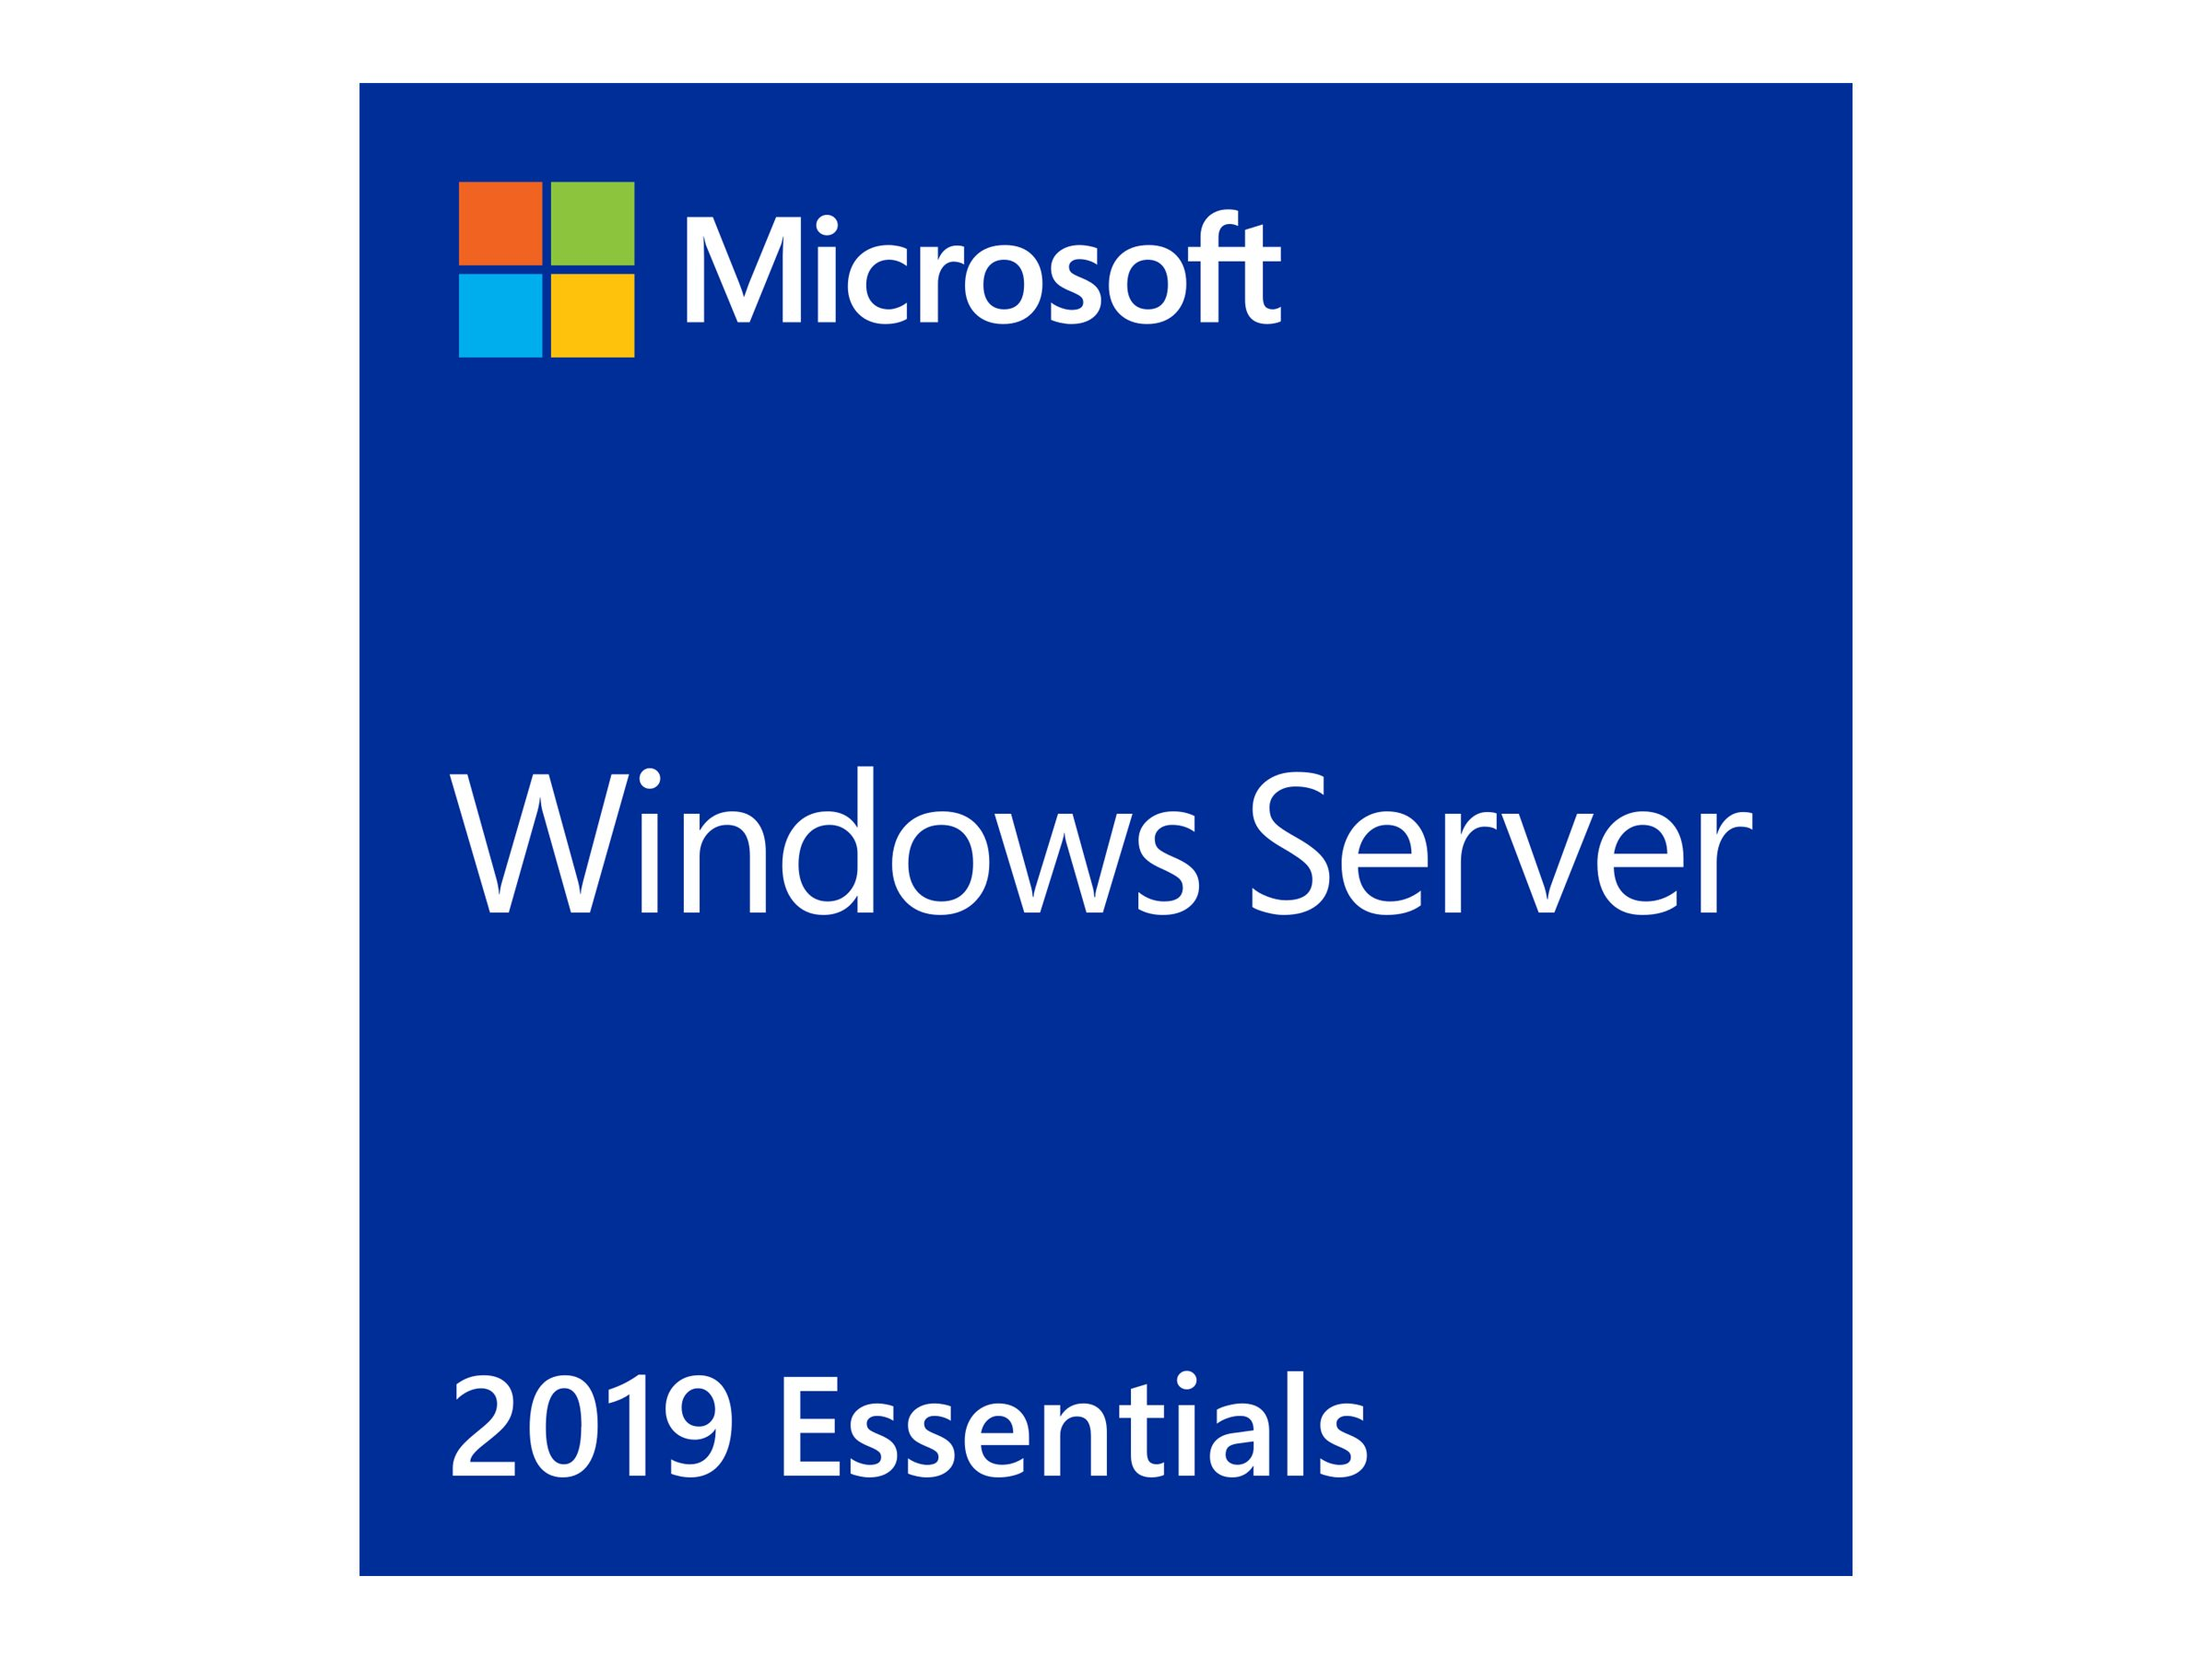 Microsoft Windows Server 2019 Essentials - Lizenz - 1 Lizenz - OEM - ROK - Multilingual